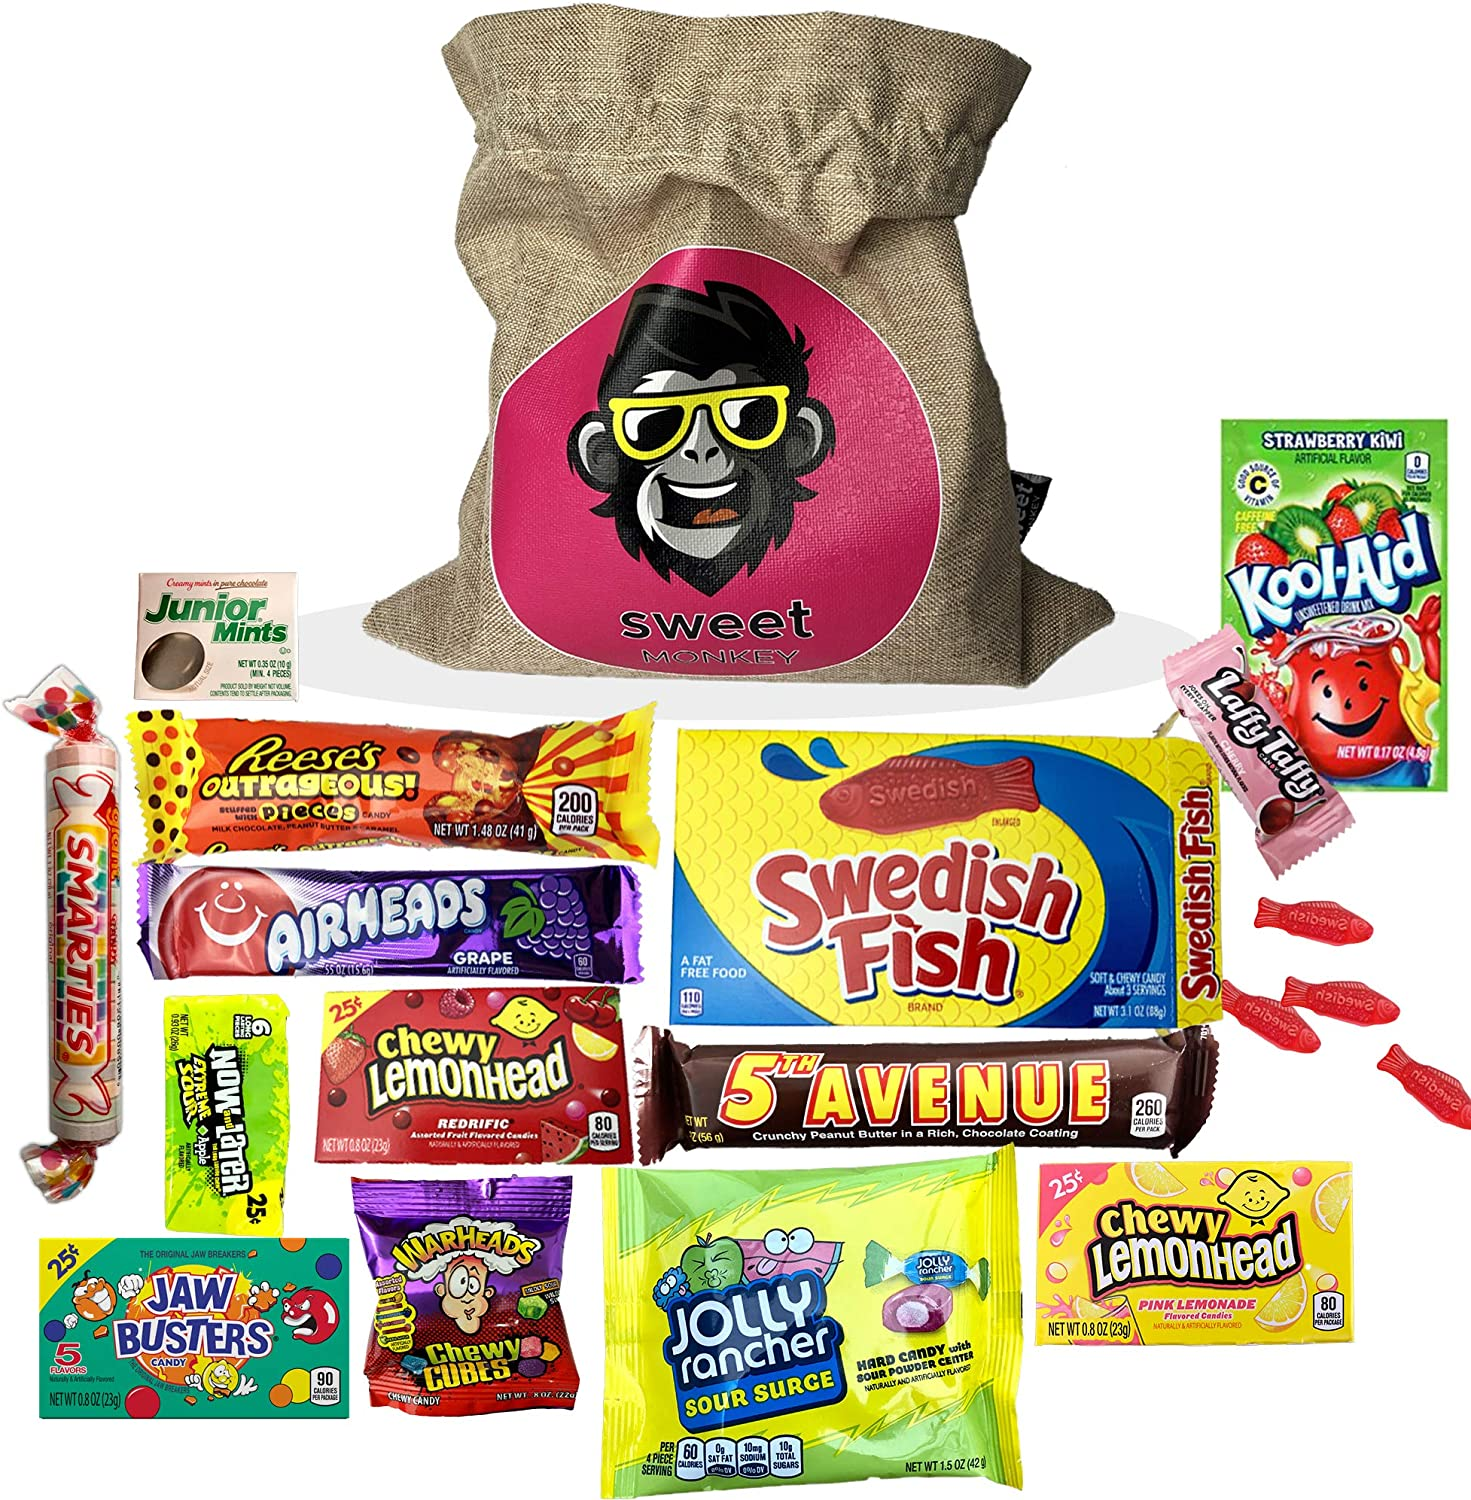 The USA Americano One | Bolsa de regalo Americano Candy USA | Bolsa De Caramelos Y Dulces Americanos | Candy Hamper Sweets & Chocolate Selection Paquete de cajas | fink gifts: Amazon.es: